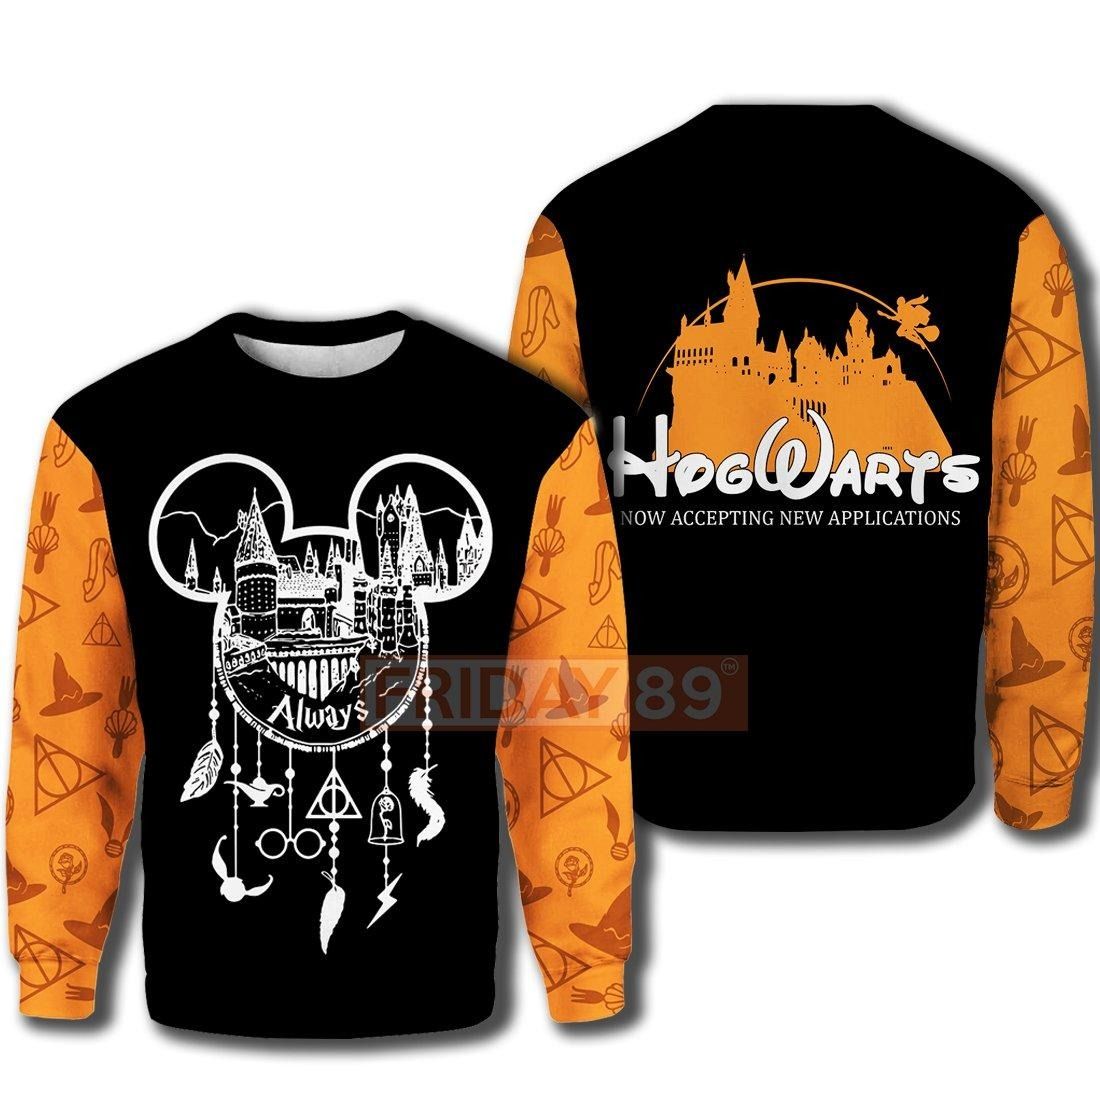 Hogwarts always dreamcatcher now accepting new appilcation 3d hoodie and sweater